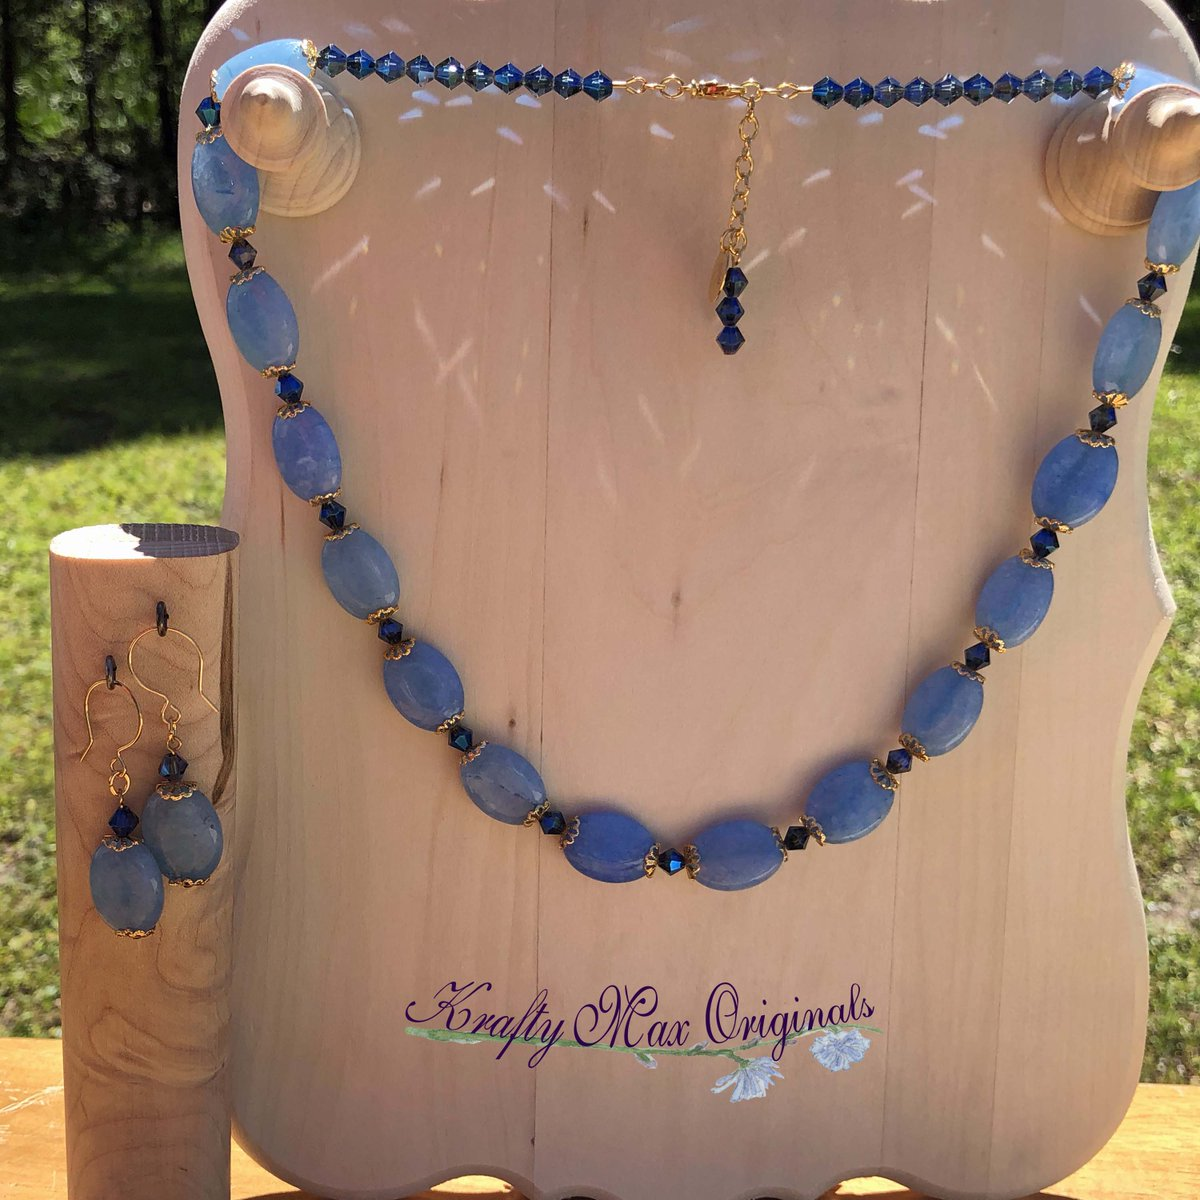 Blue Maylay Jade with Swarovski Crystals and Gold Plated Findings Necklace Set $56  #handmade #jewelry #supporthandmade #buyhandmade #handmadelove #jewelrydesigner #jewelryart #uniquejewelry #handcrafted #kraftymax #kmax